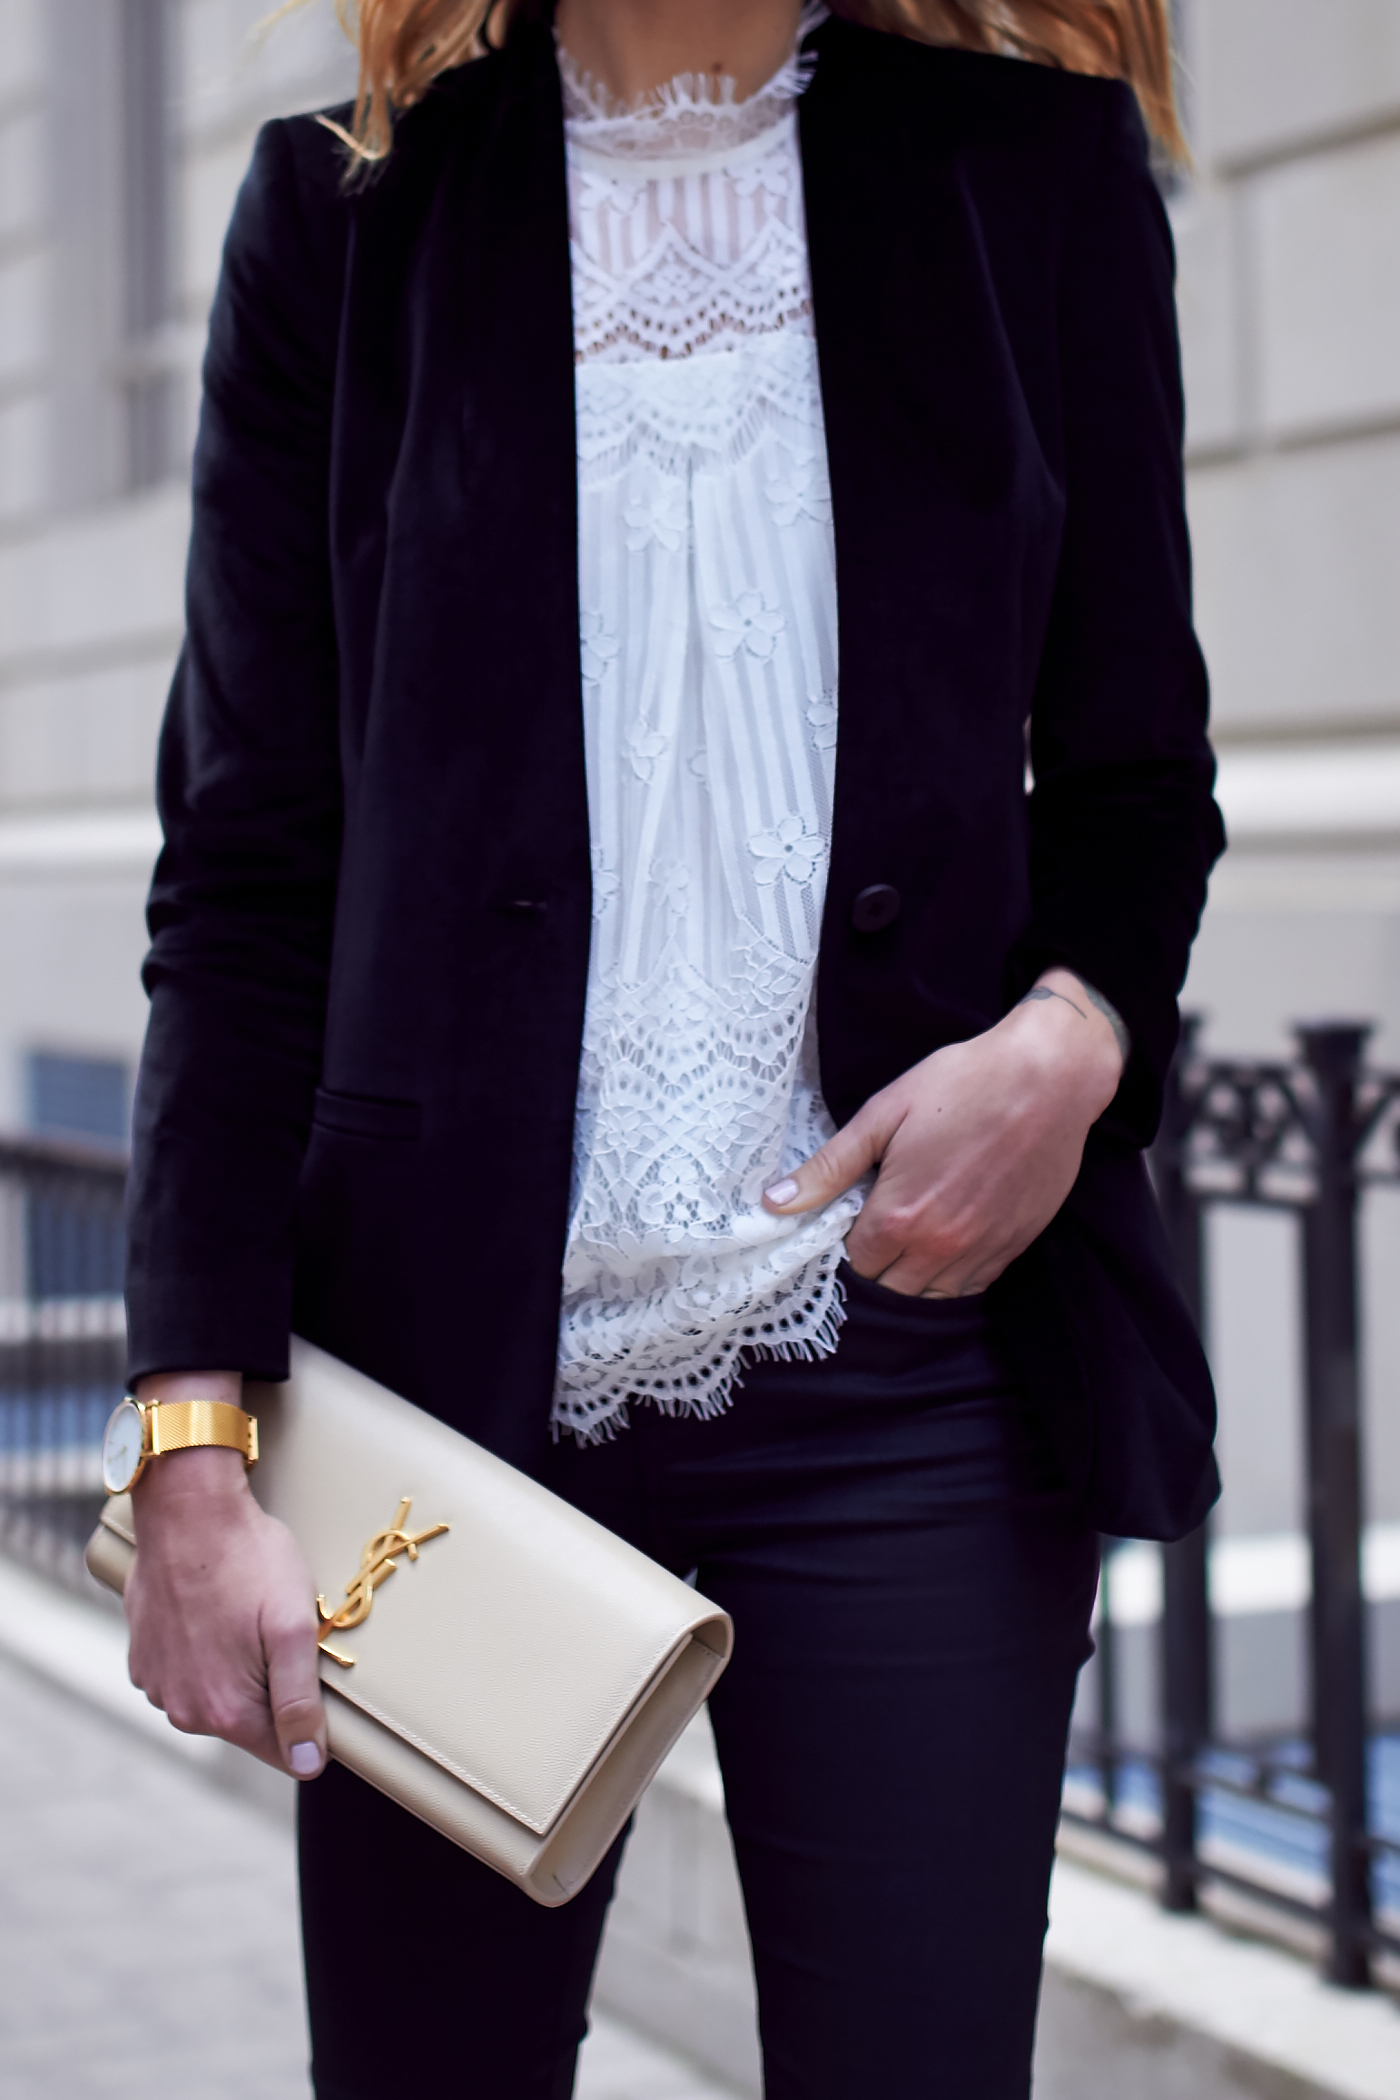 Fall Outfit, Holiday Outfit, White Lace Top, Black Velvet Blazer, Saint Laurent Clutch